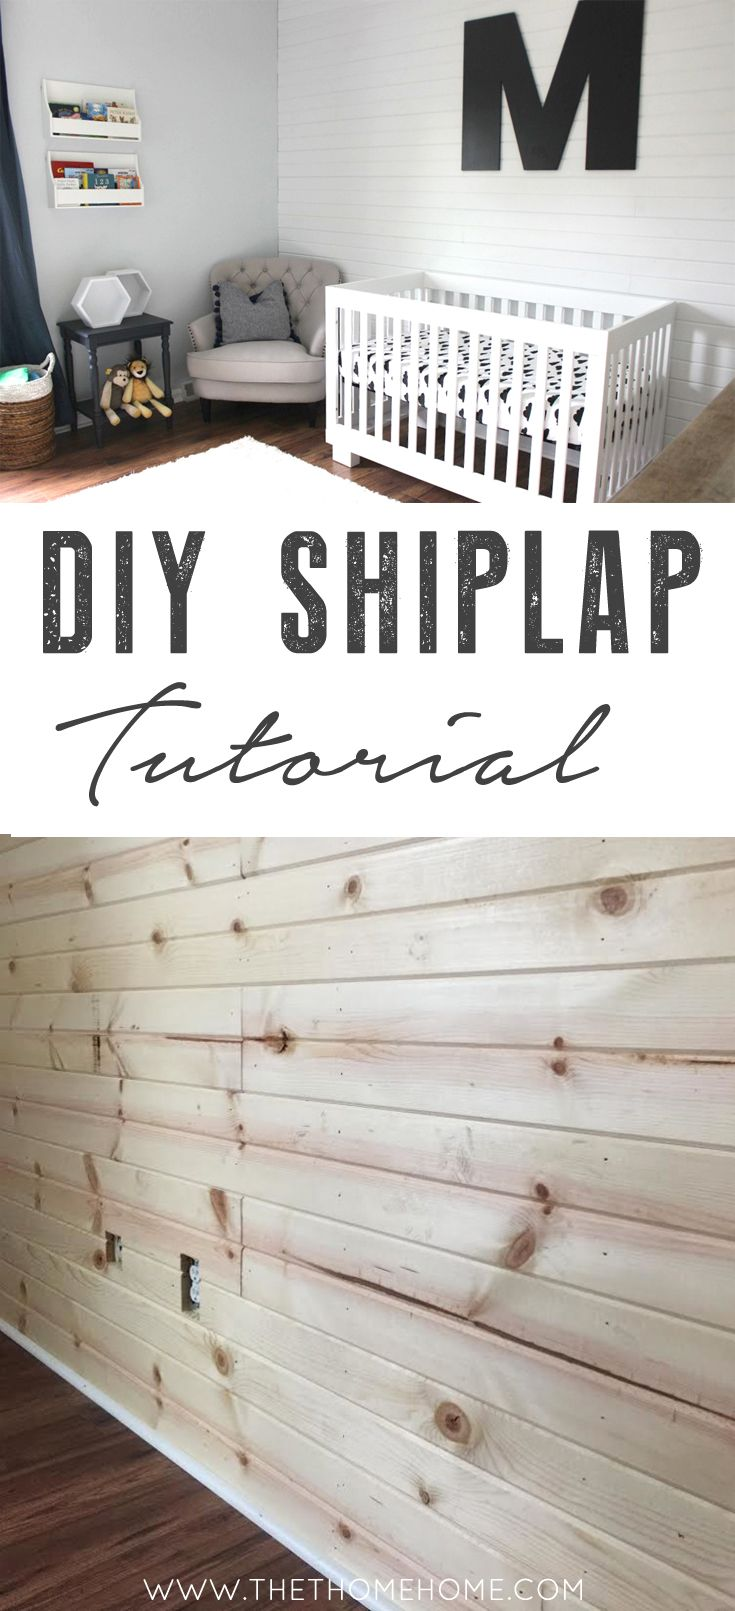 The Easiest Diy Shiplap Tutorial Plank Wall Painted With